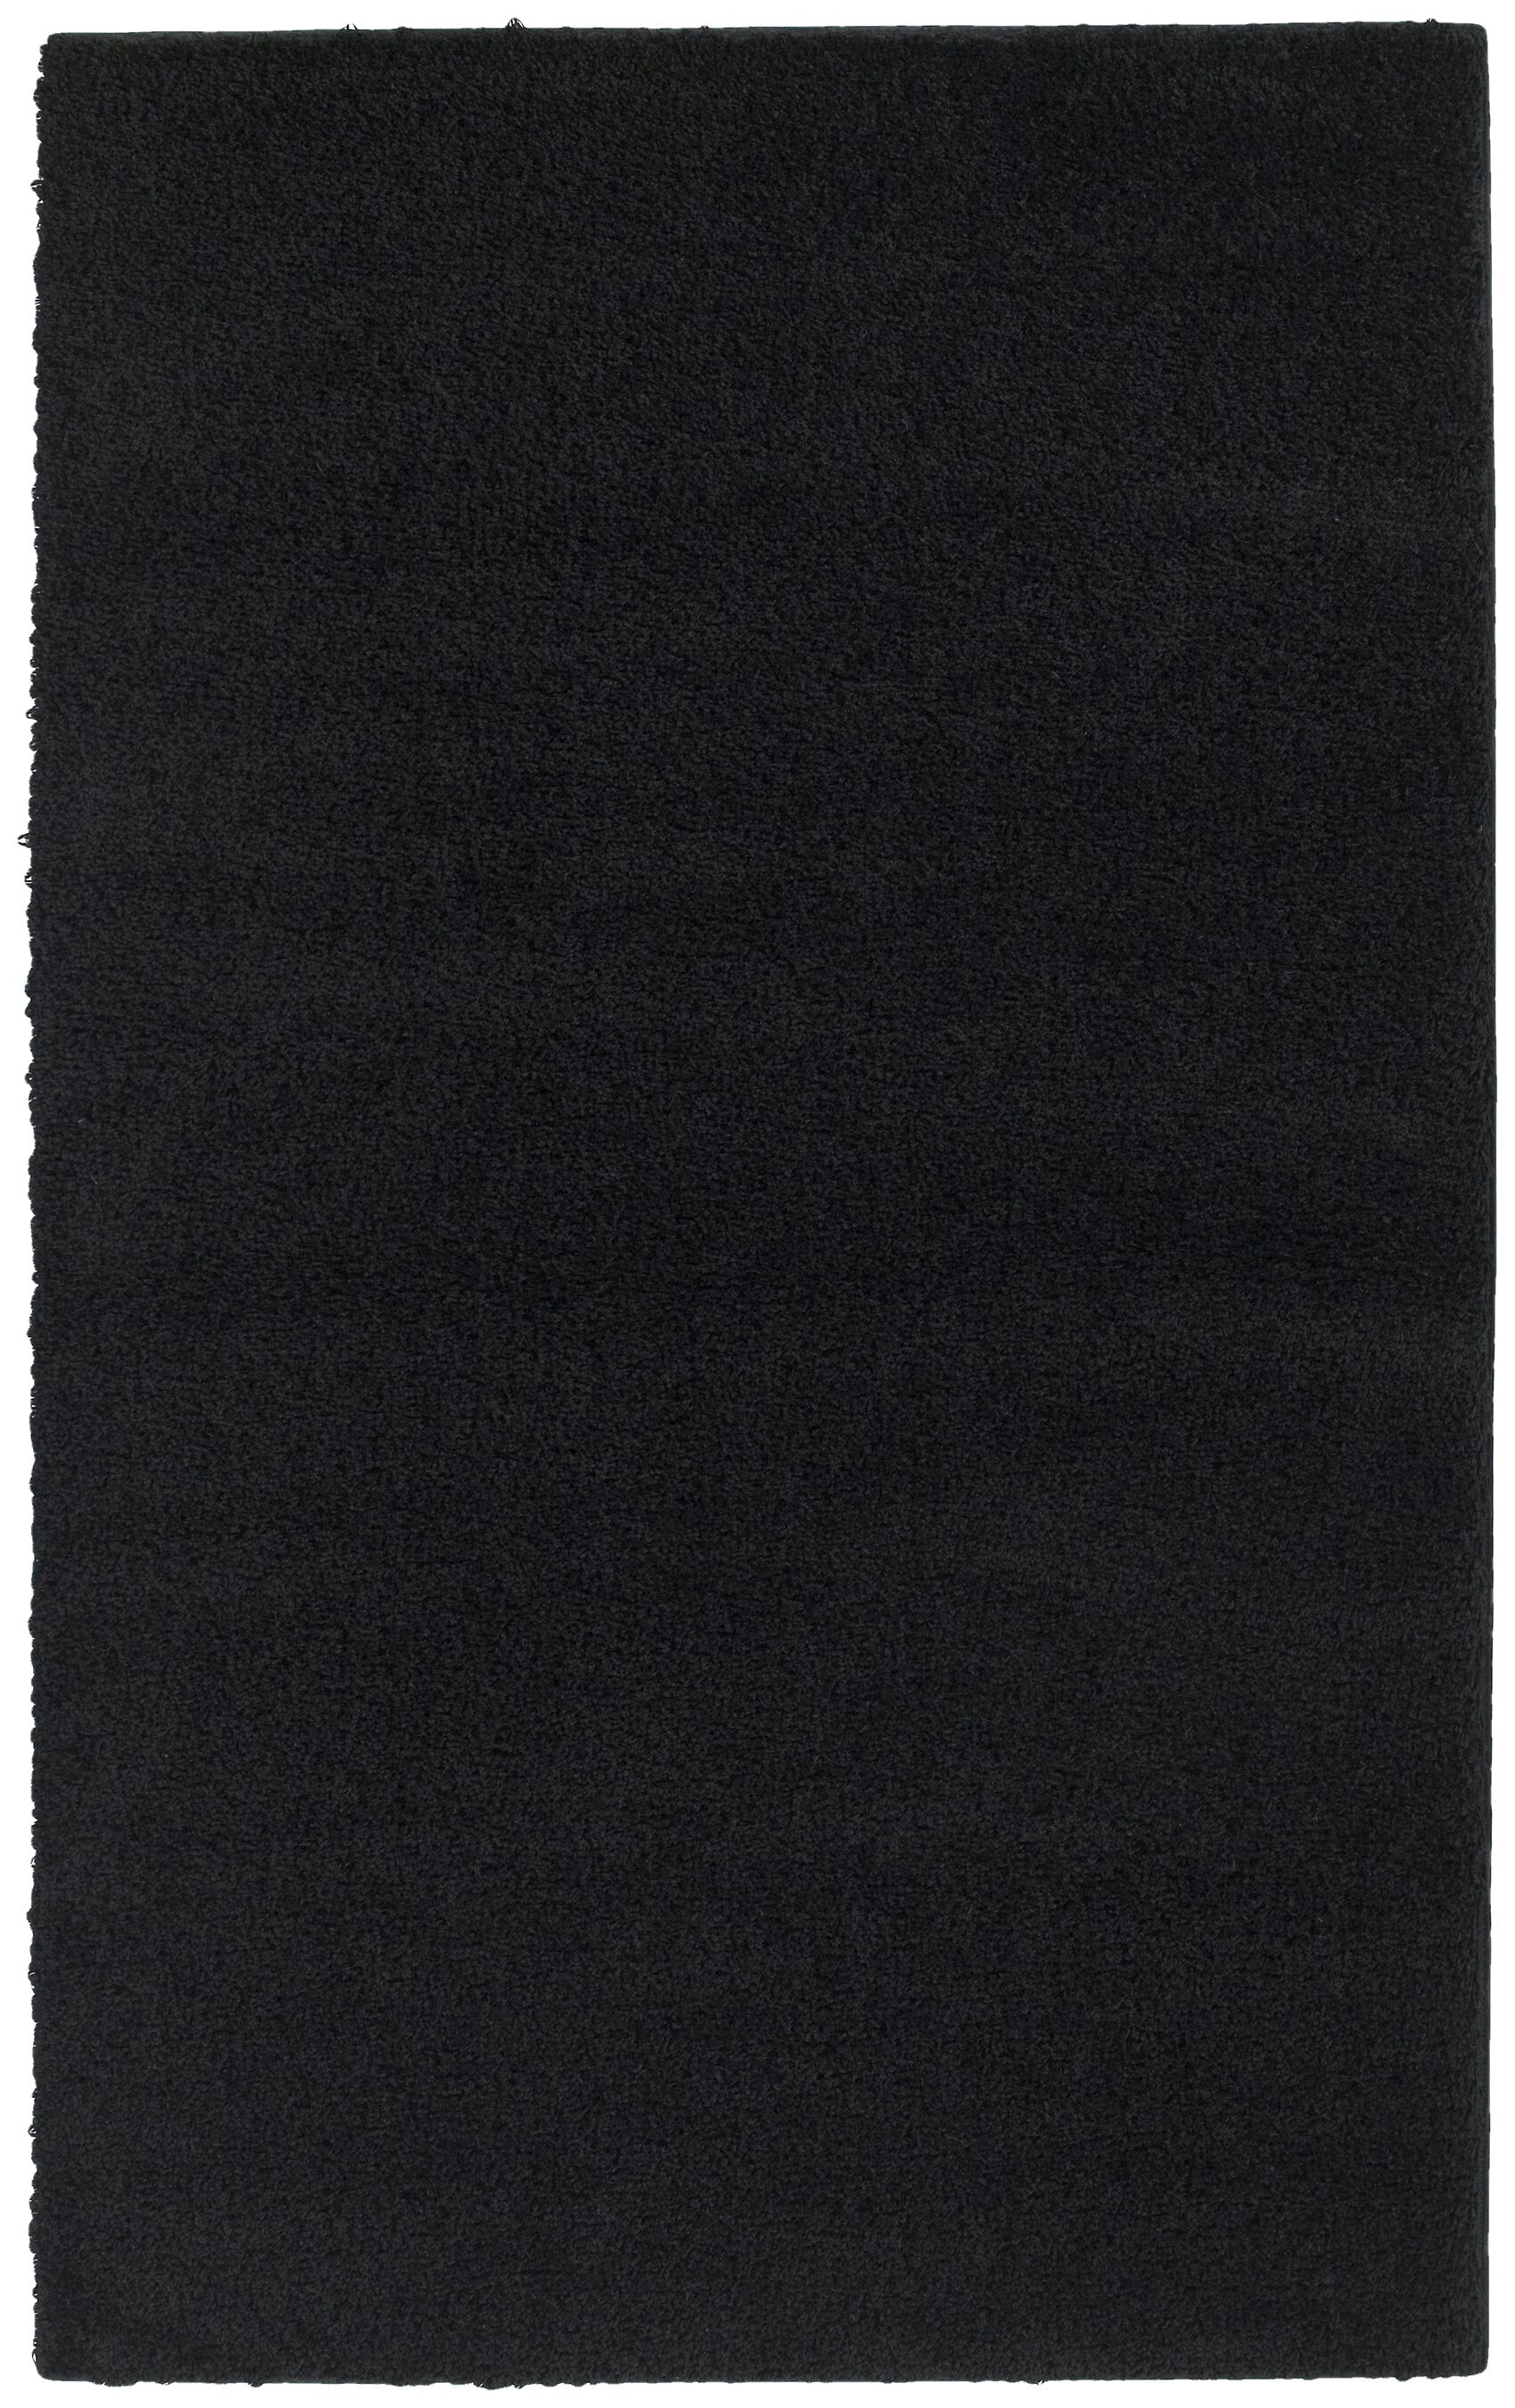 Black Southpointe Area Rug Rug Size: Rectangle 5' x 7'